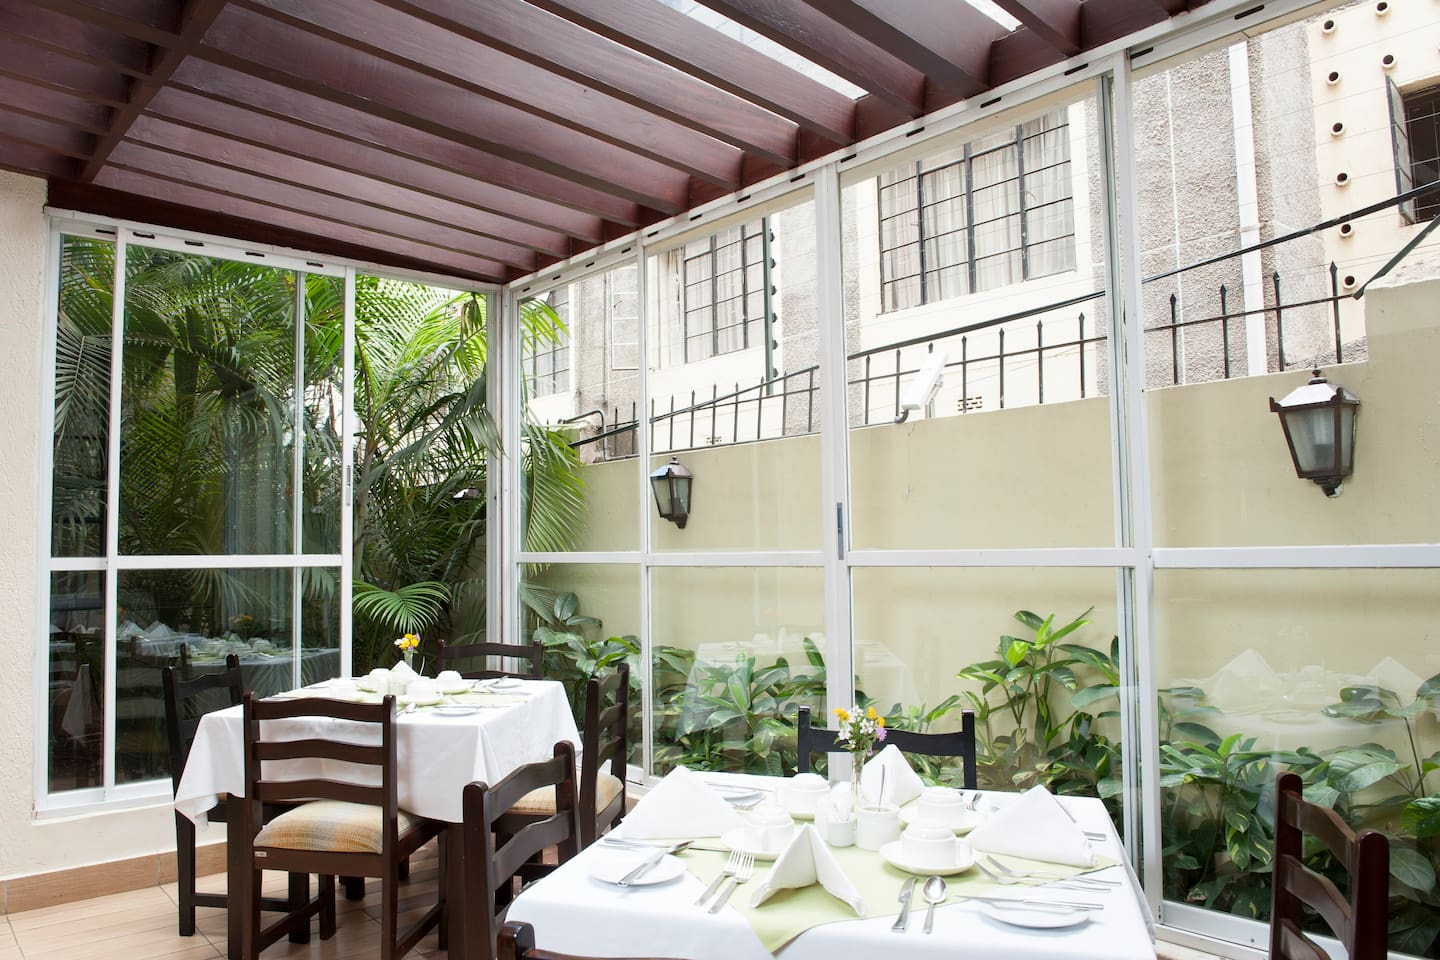 The airy and beautiful Mvuli House indoor Restaurant